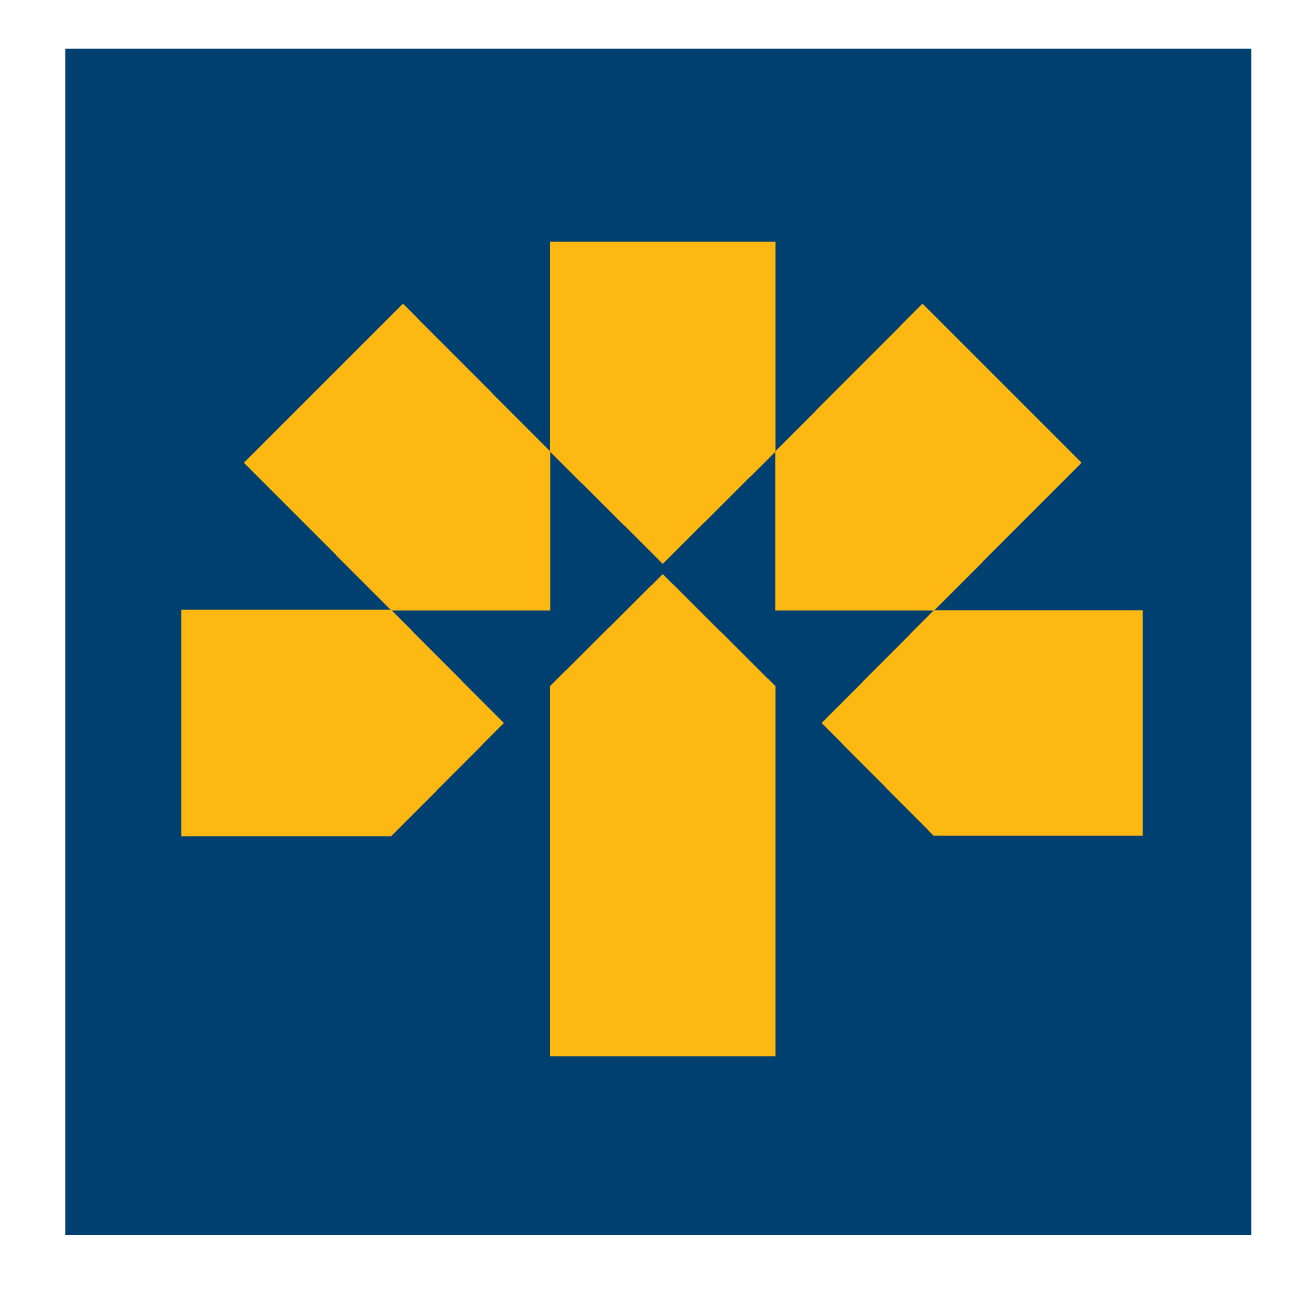 Laurentian Bank Financial Group's logo